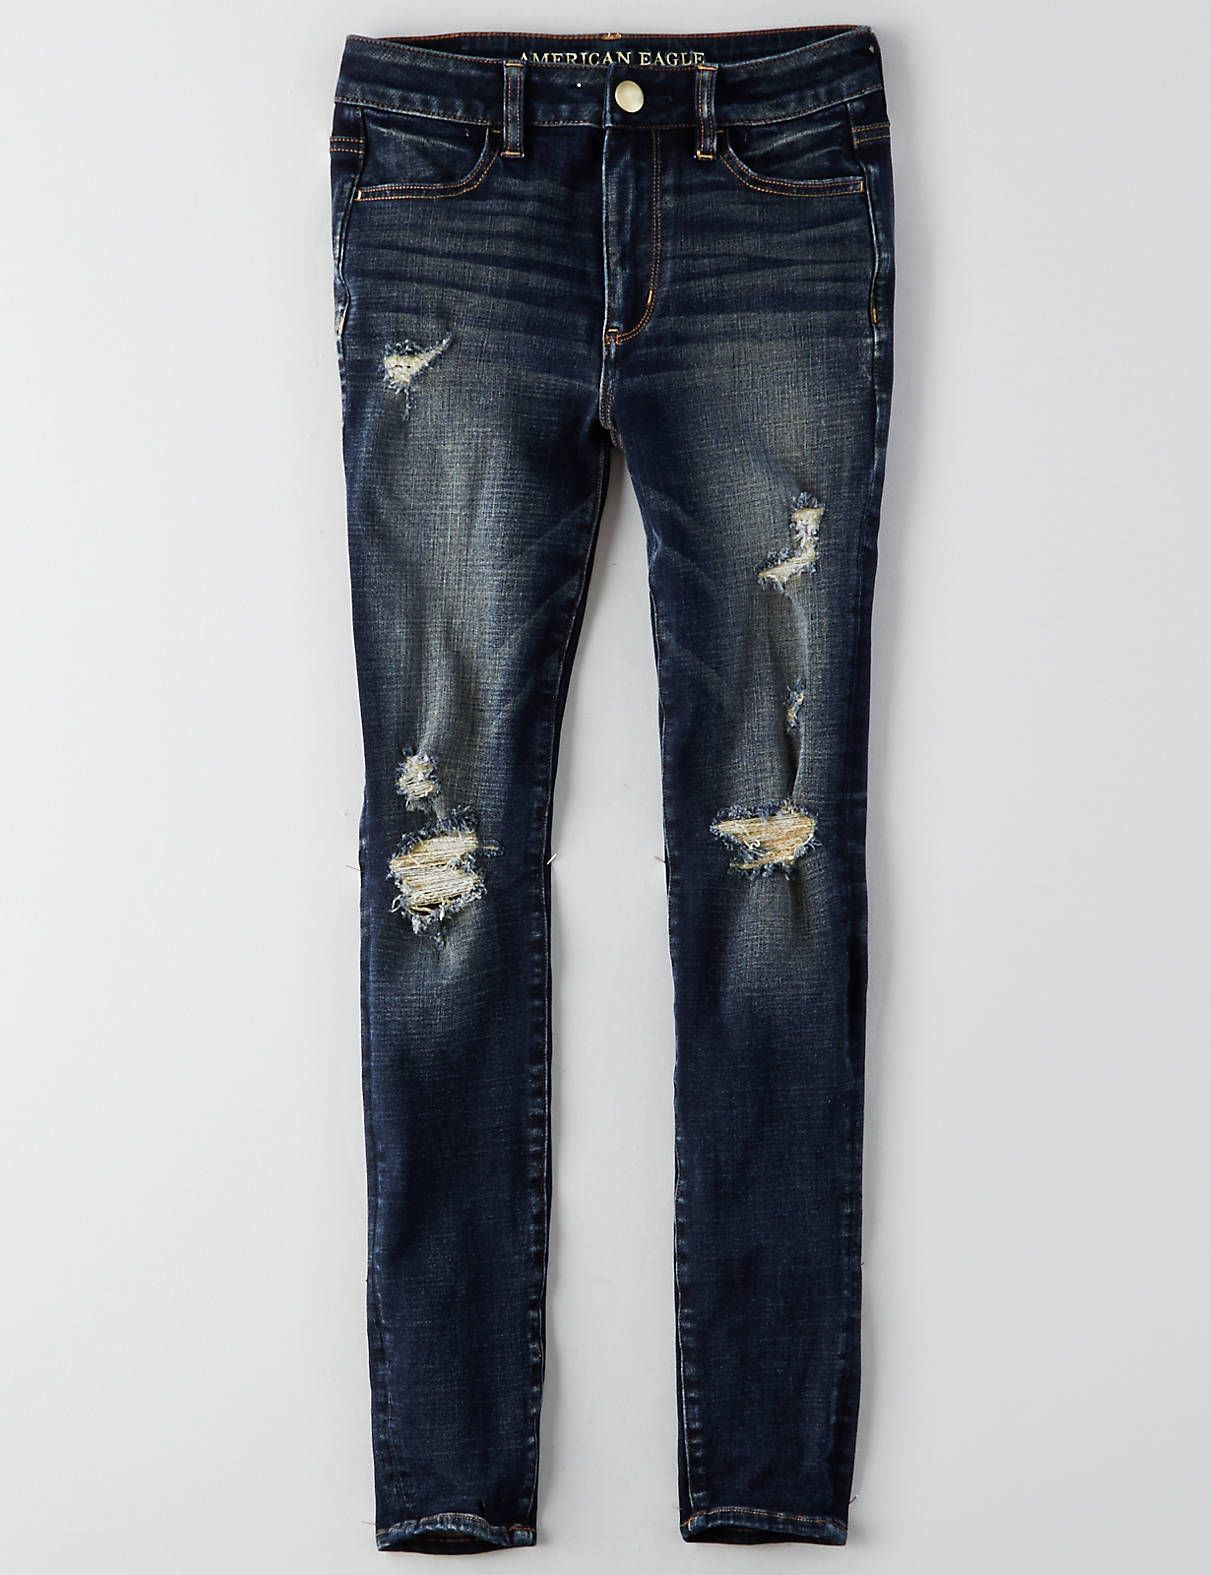 93691453795 AEO Denim X4 Hi-Rise Jegging, Indigo Rust Destroy | American Eagle  Outfitters